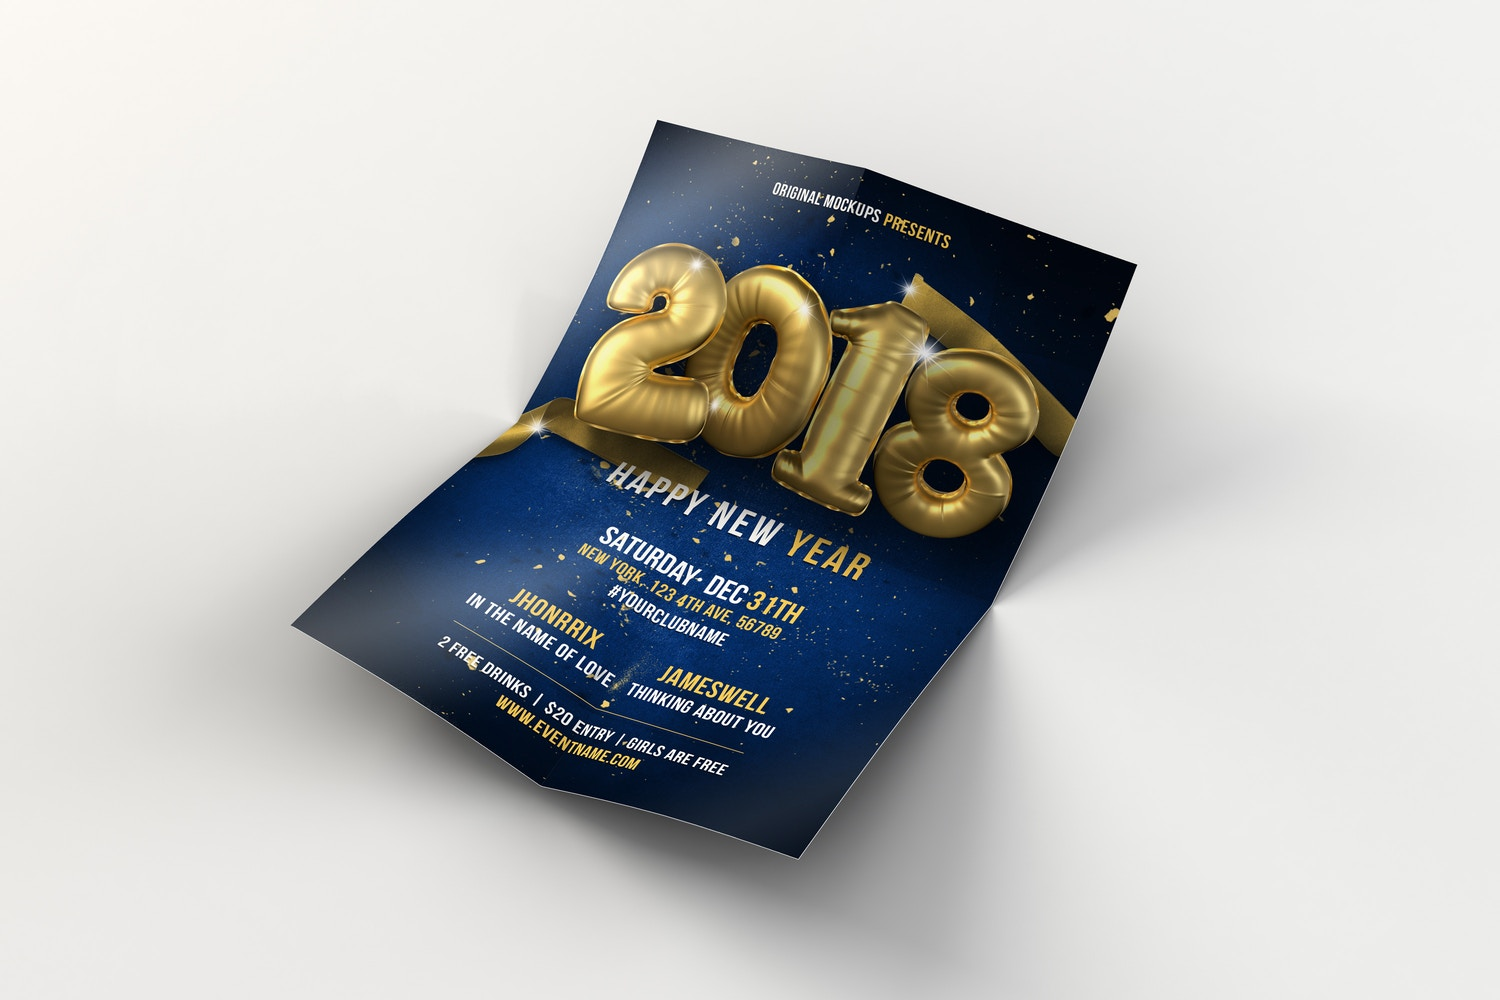 New Year Flyer - Poster 02 by Original Mockups on Original Mockups